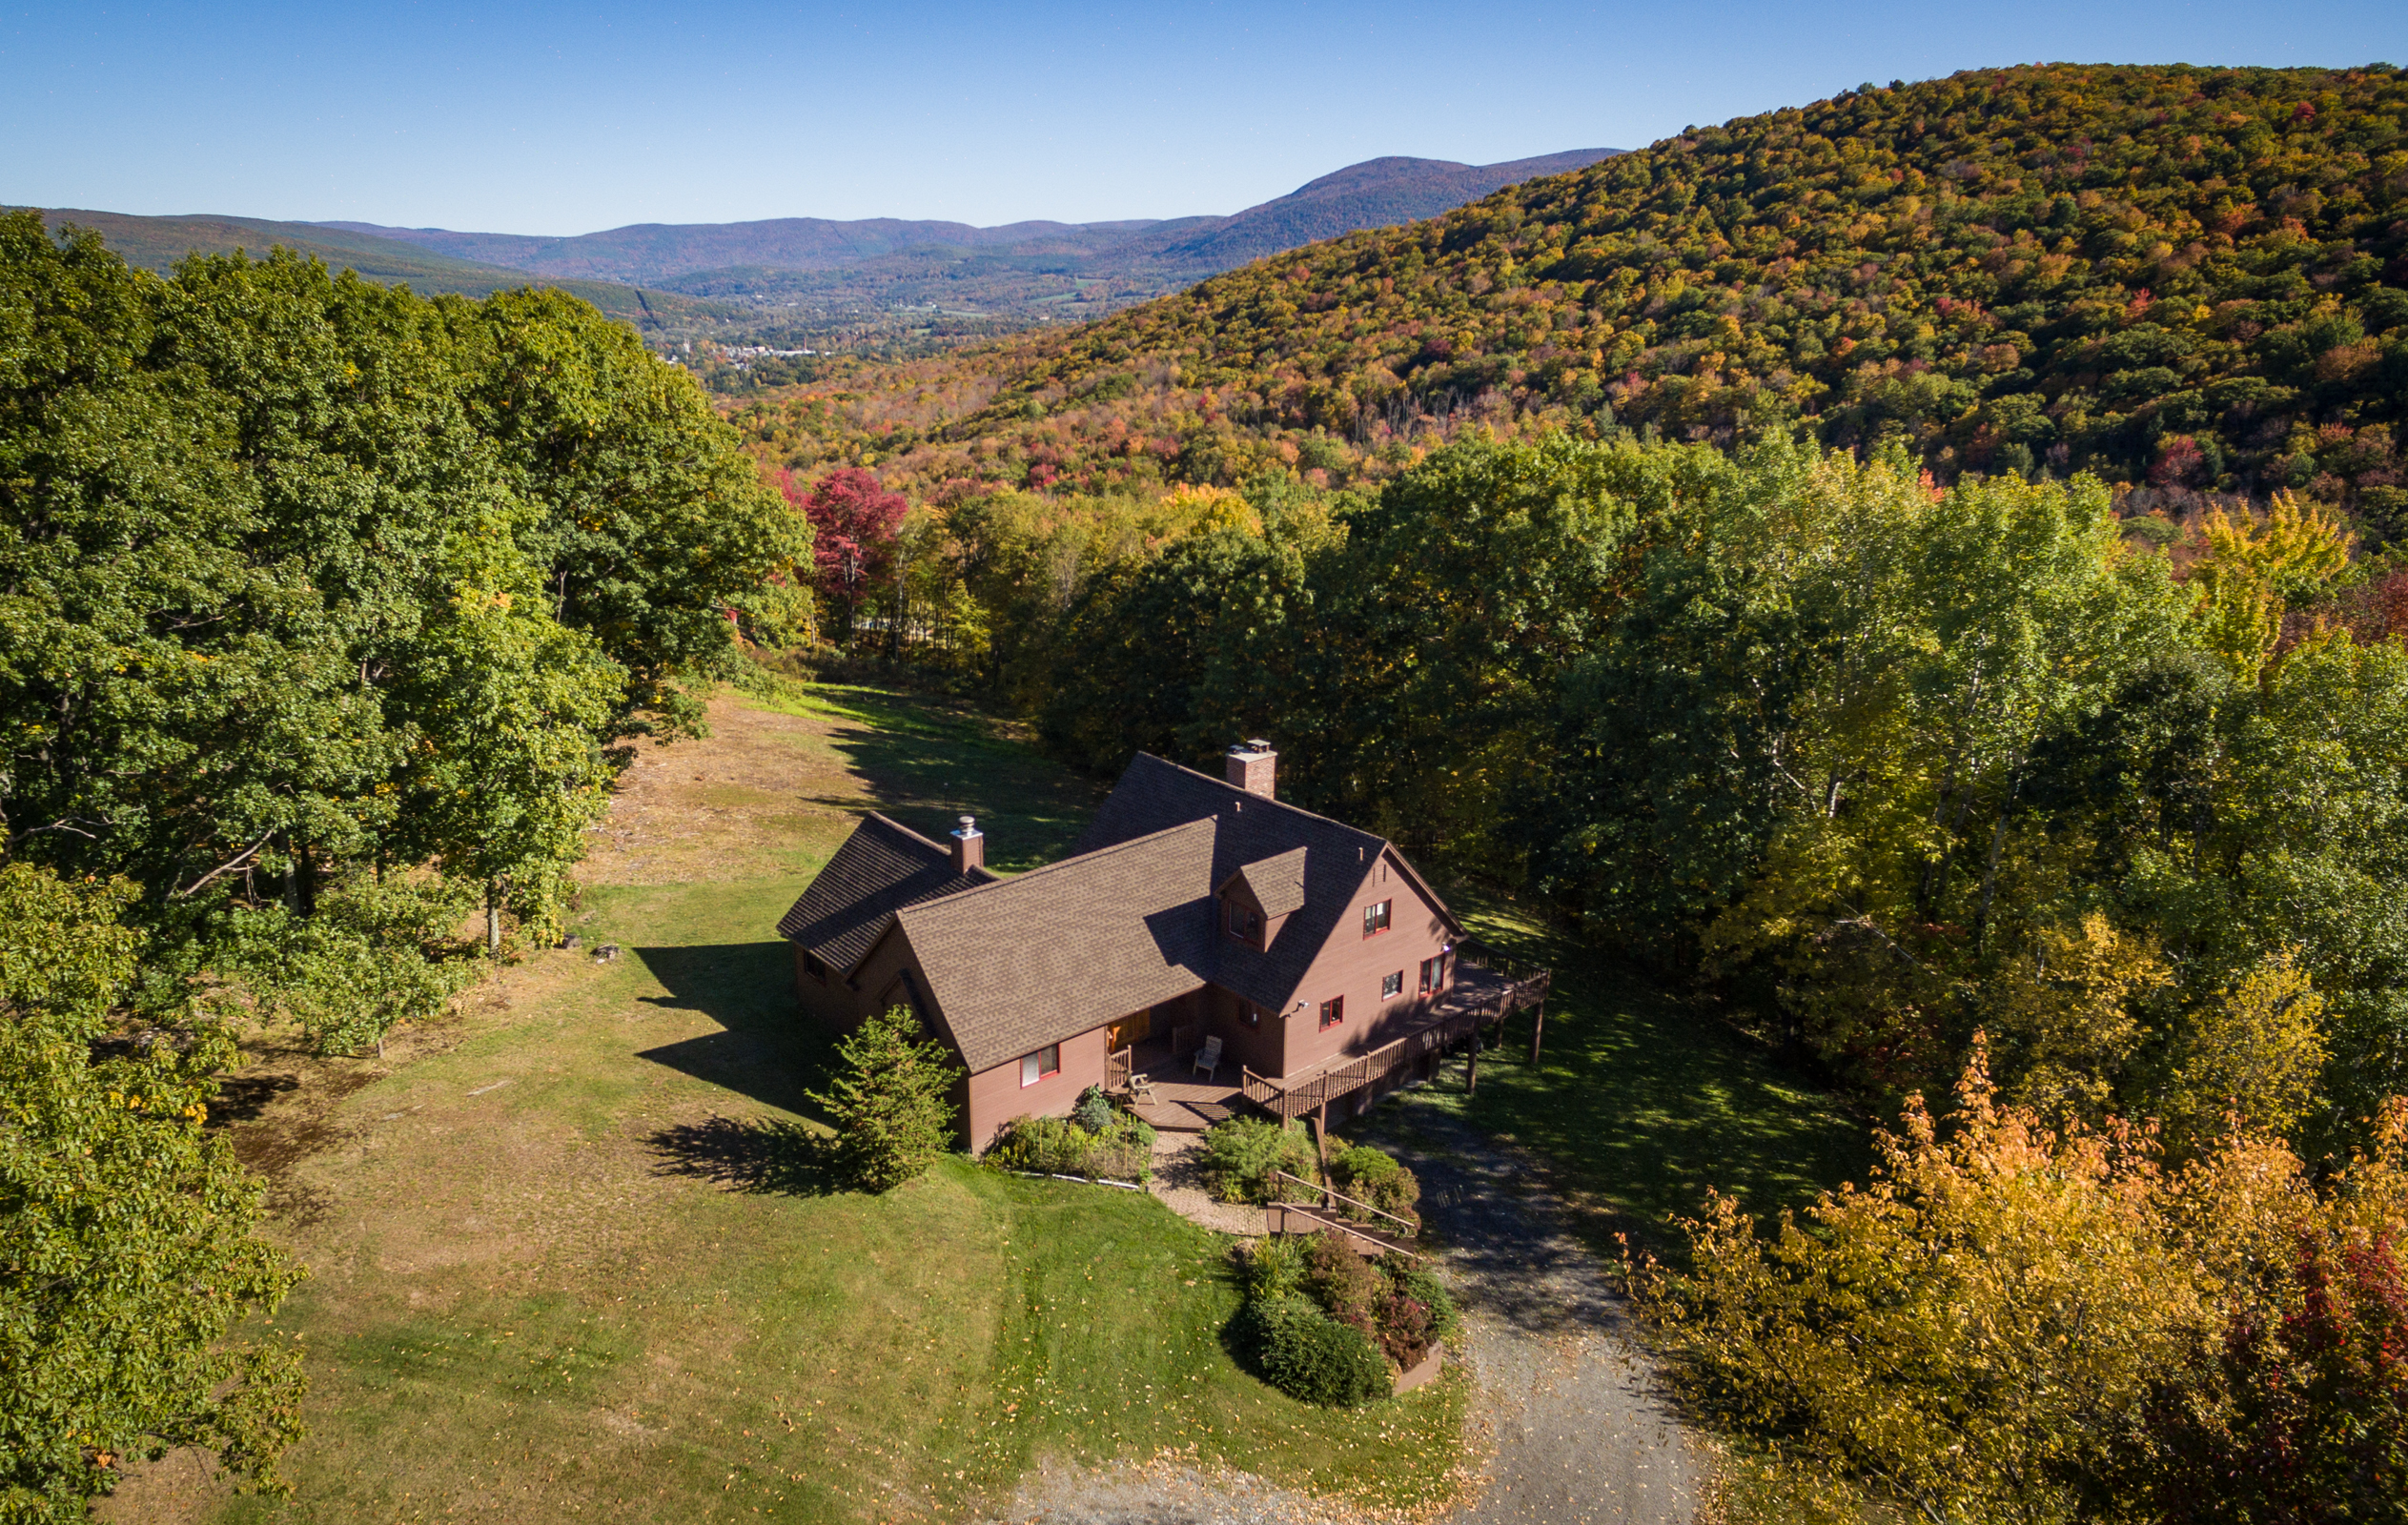 Single Family Home for Sale at Spectacular 200-Acre Parcel with Two Homes, Barn, Views Williamstown, Massachusetts, 01267 United States